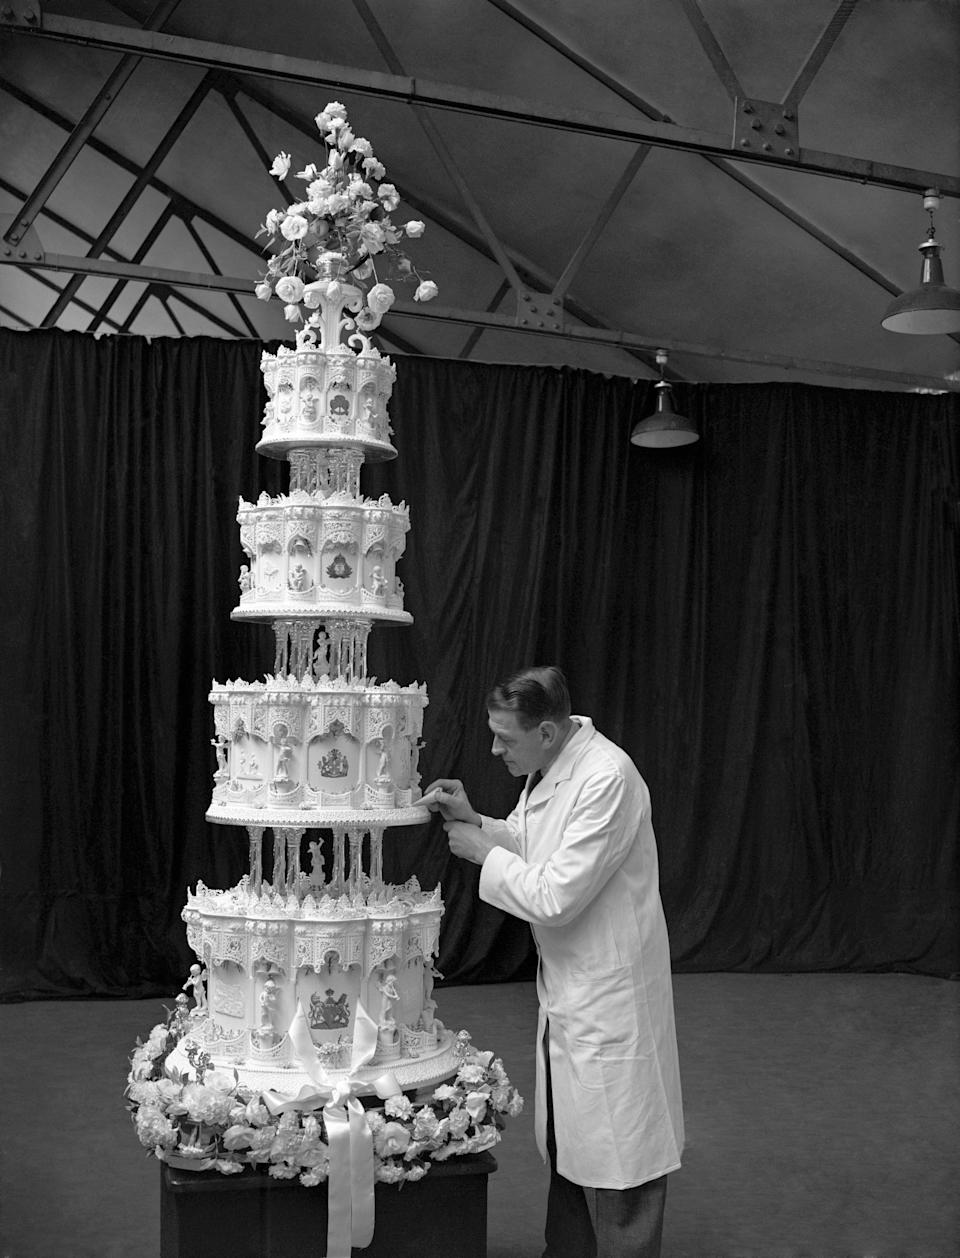 <p>Mr Schur, chief confectioner at McVitie and Price Ltd, was the mastermind behind the incredibly elaborate, 9ft cake baked for the Queen's wedding to Prince Philip back in 1947. As post-war rationing was still underway, the cake's ingredients were flown in from South Africa and Australia – giving the four-tier bake the nickname the '10,00-mile cake.'<em> [Photo: Getty]</em> </p>